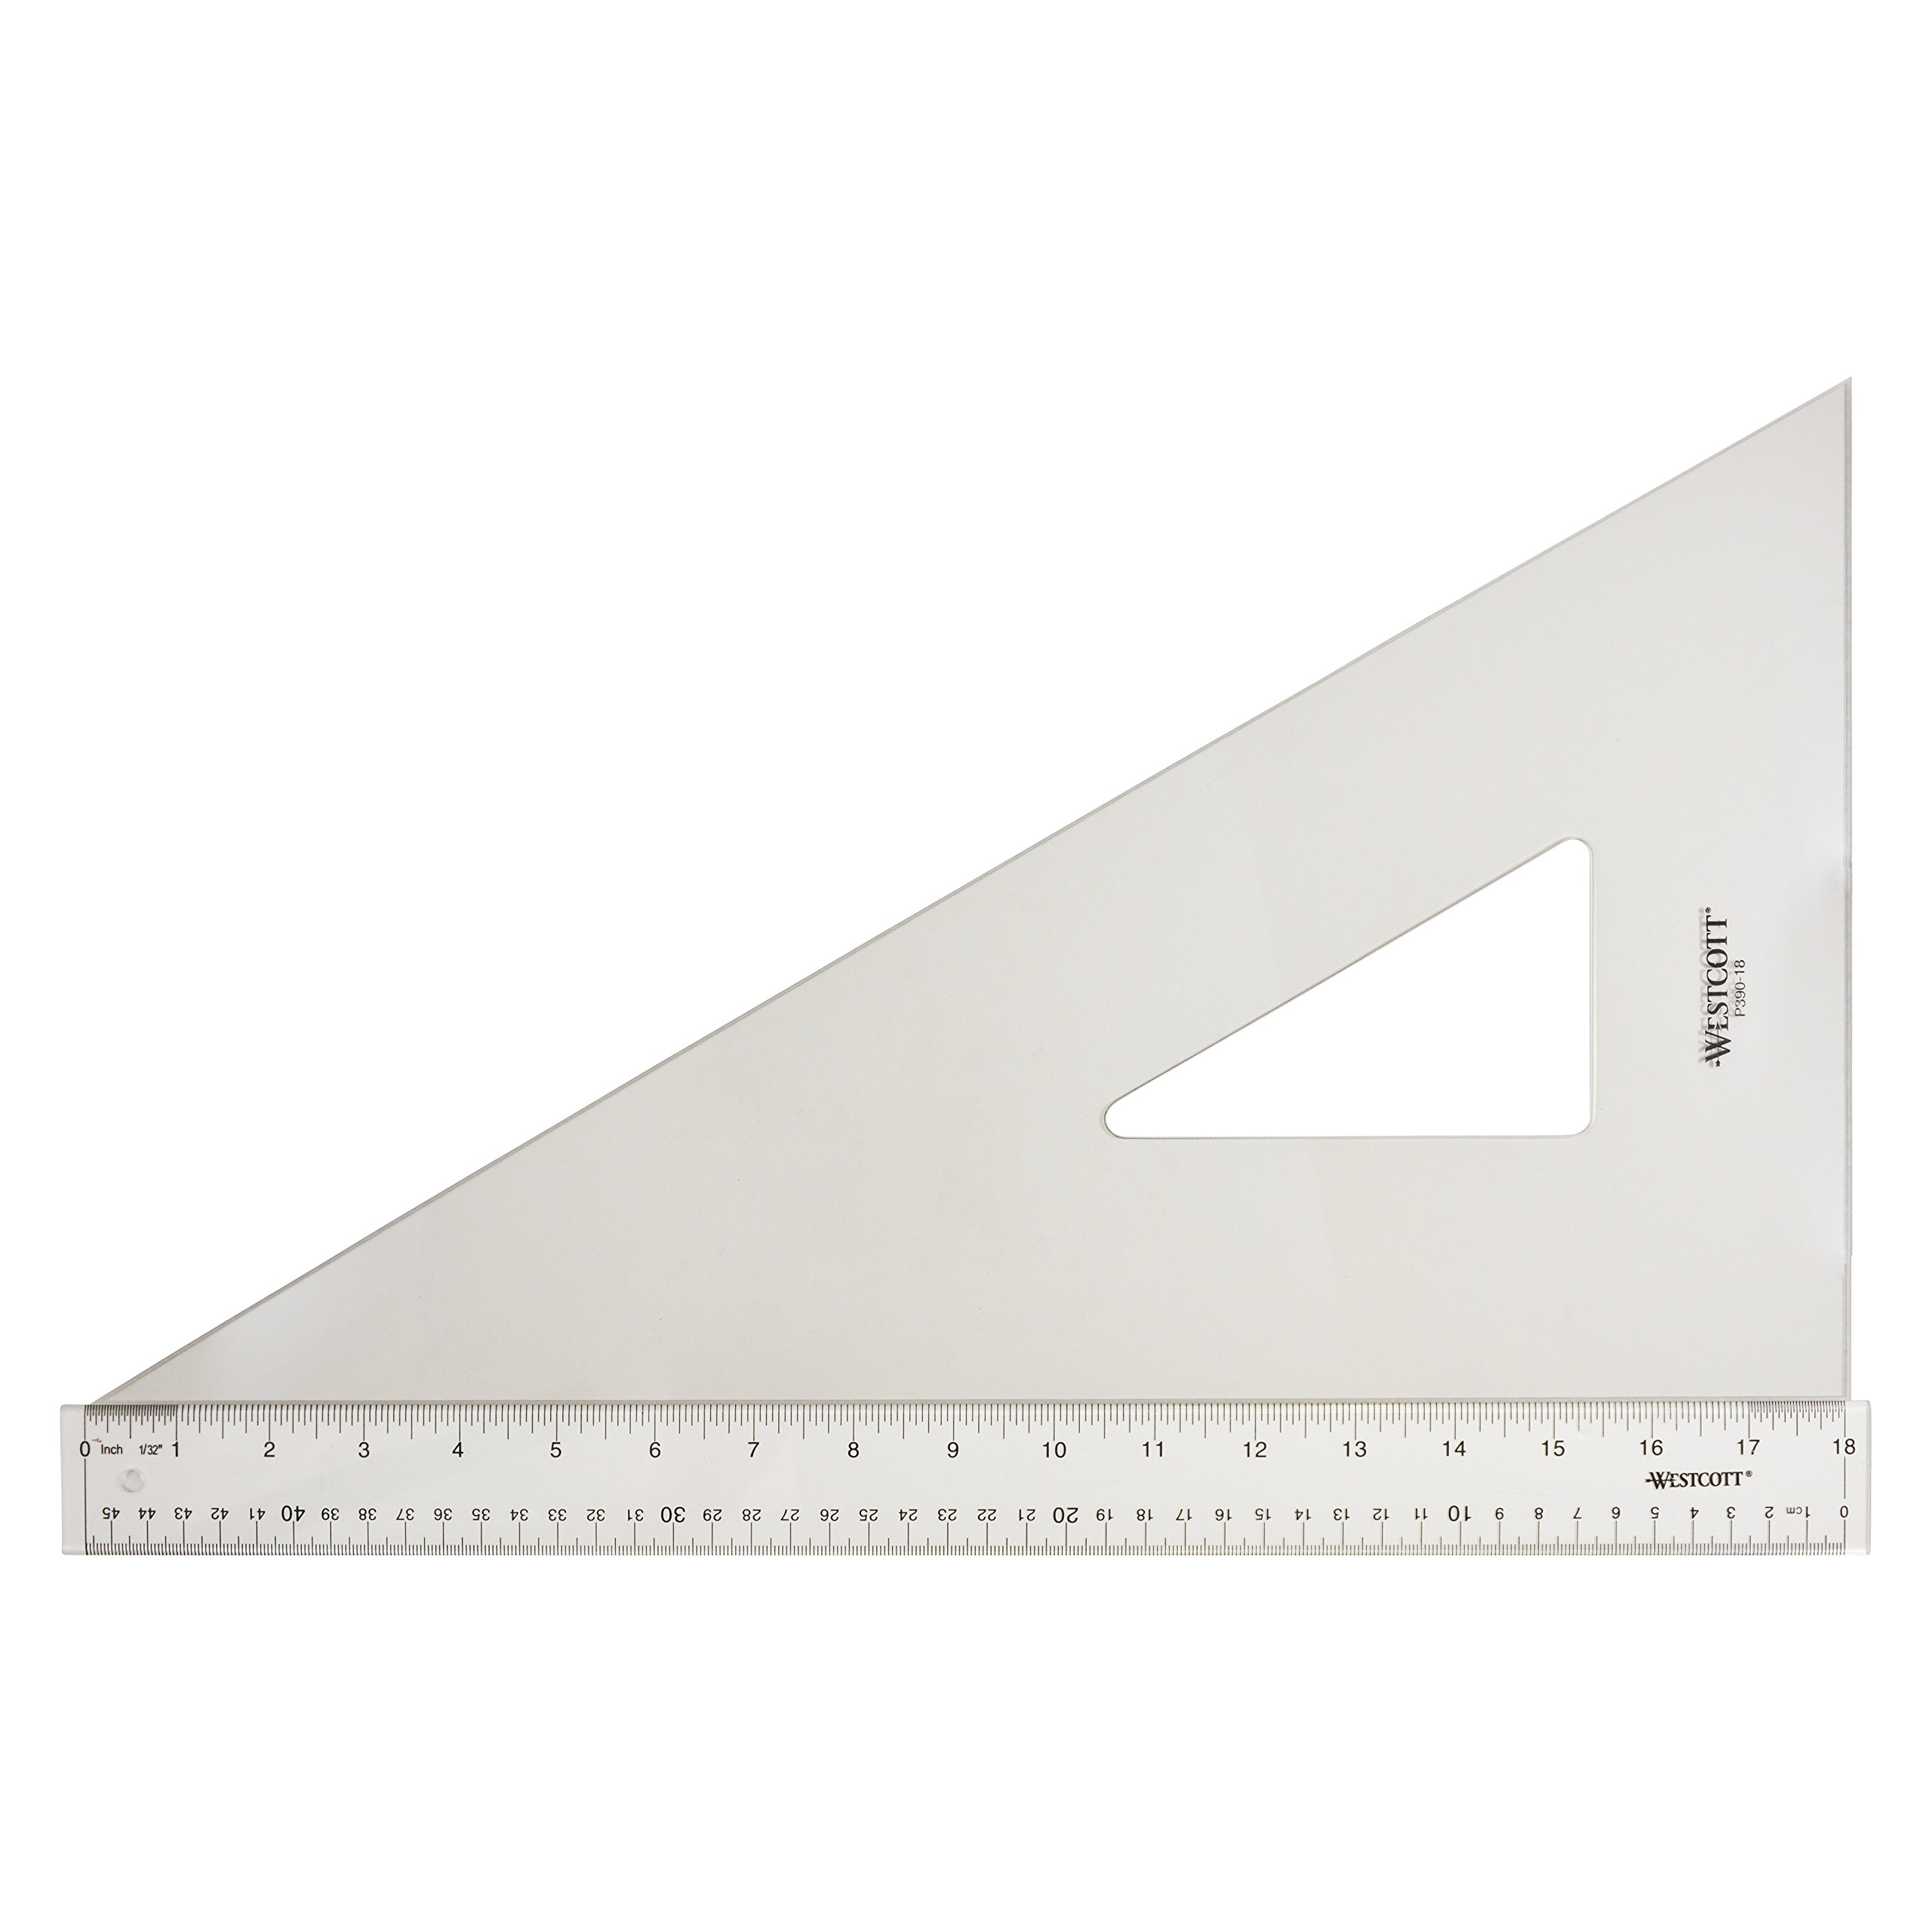 Westcott Professional Triangle, 18'', 30/60 Degree, Transparent (P390-18) by Westcott